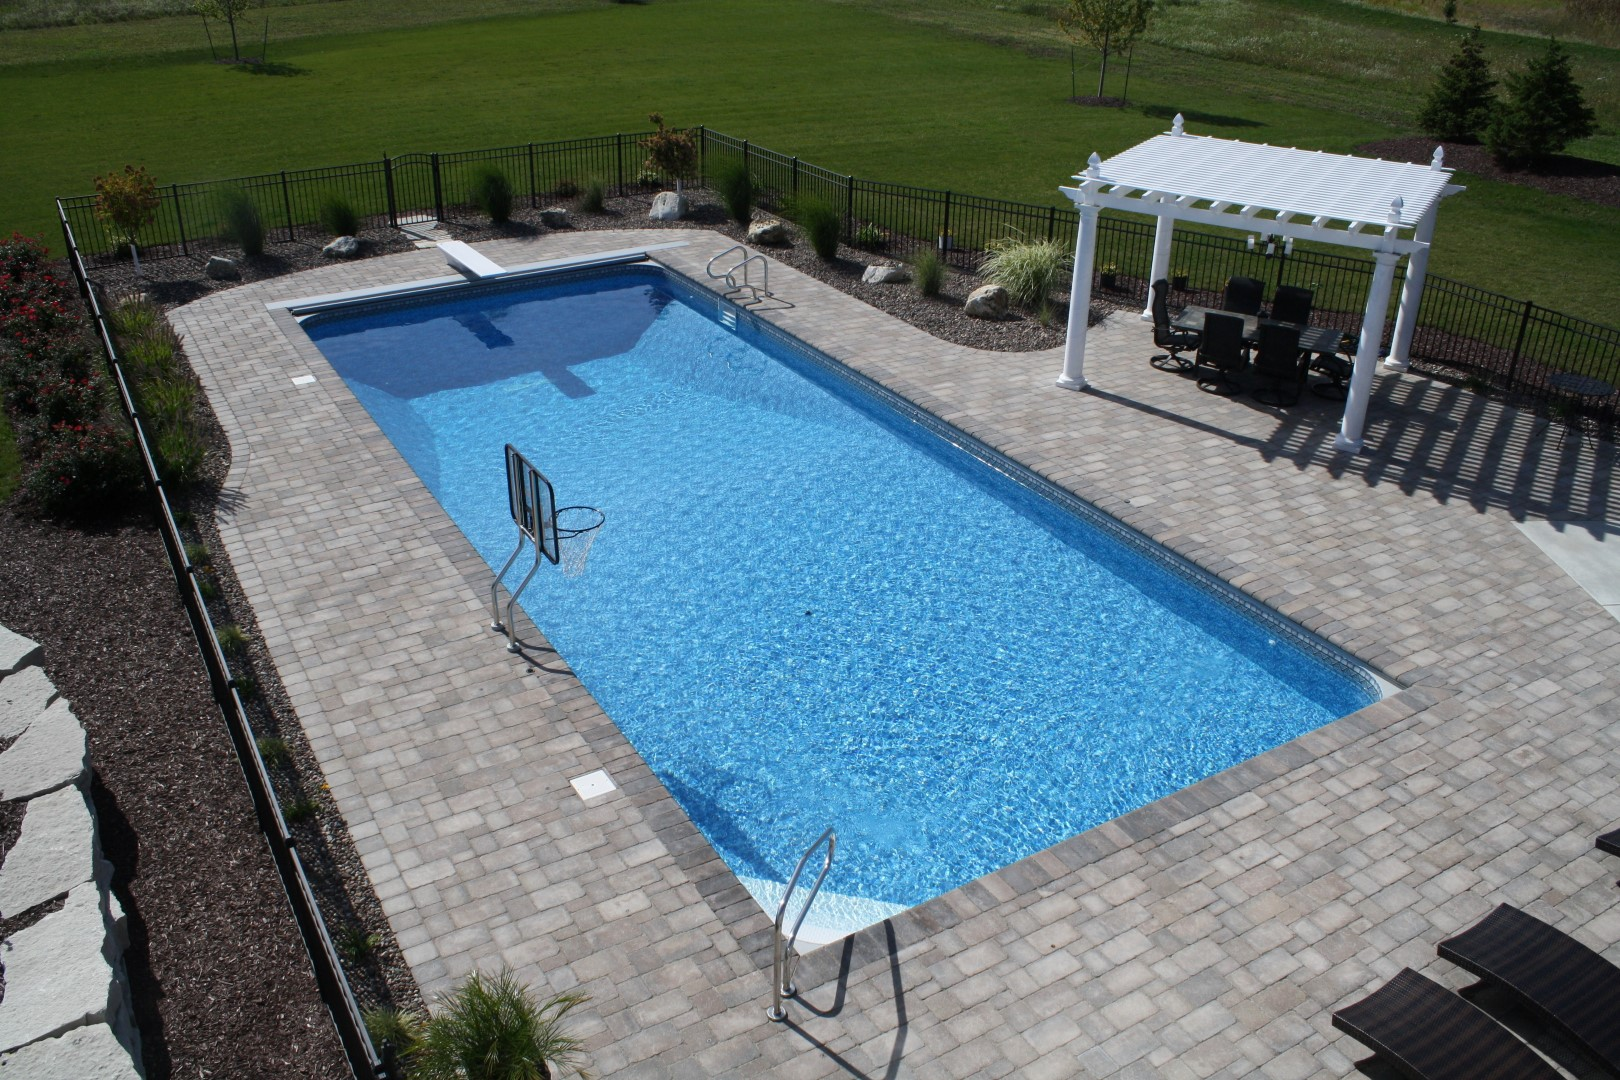 Inground swimming pool builders in waukesha wi and for Best type of inground pool